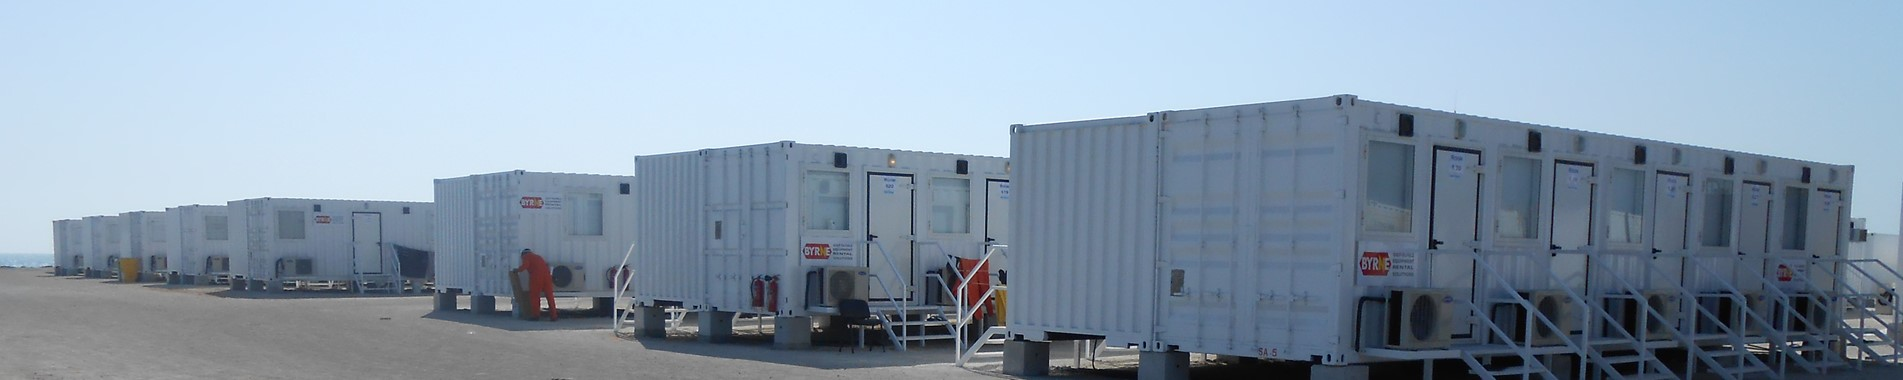 Turnkey oil & gas offshore camp